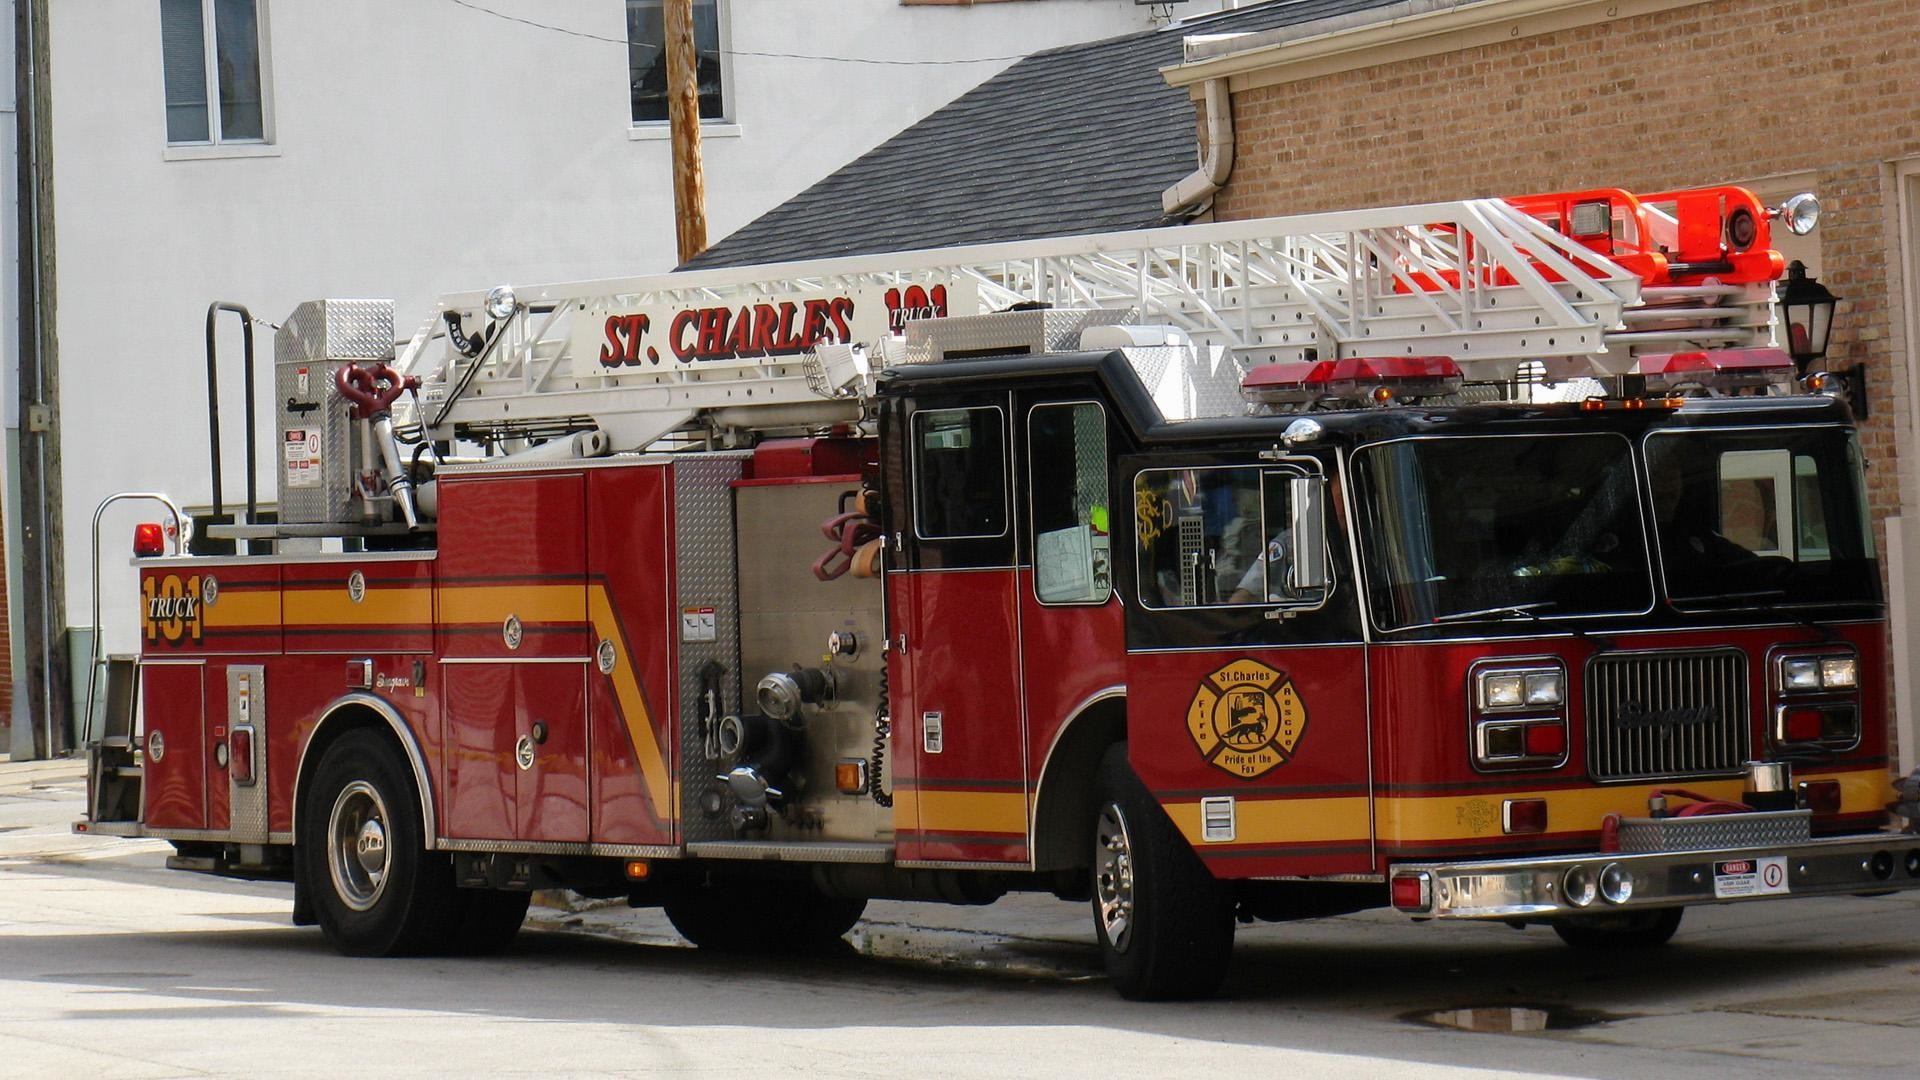 St. Charles Fire Department (IL – USA)